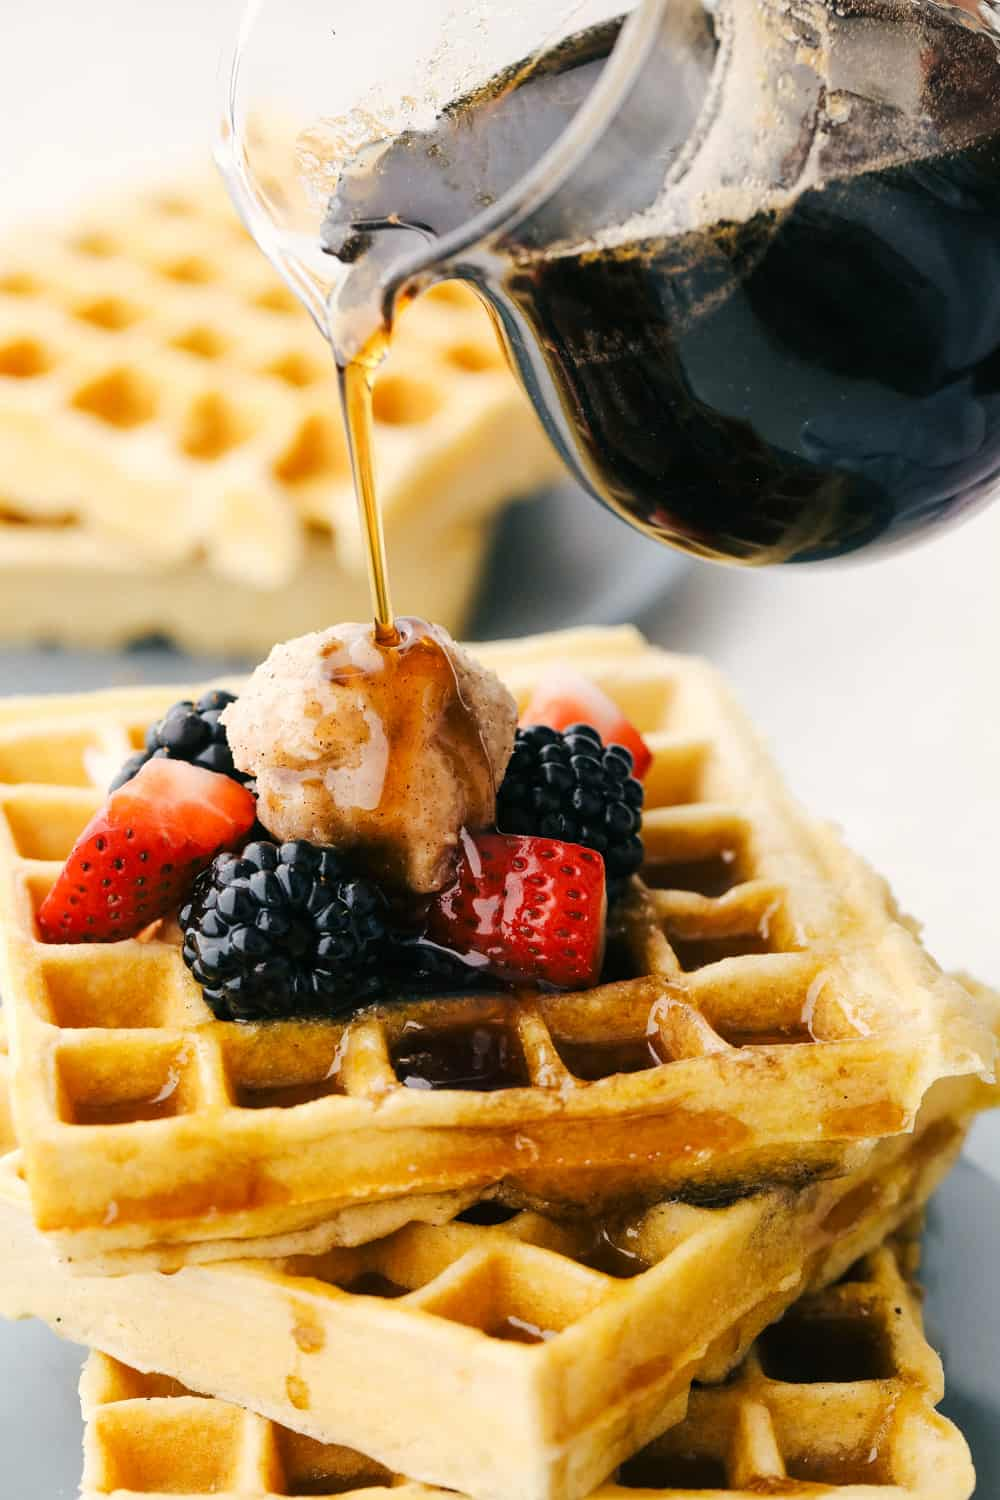 Pouring maple syrup over waffles.